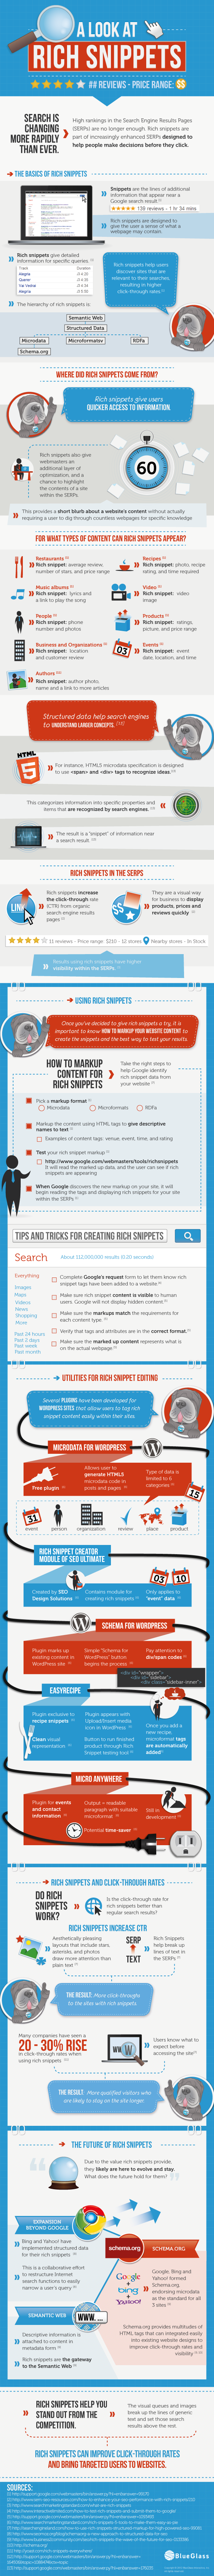 rich snippets guide